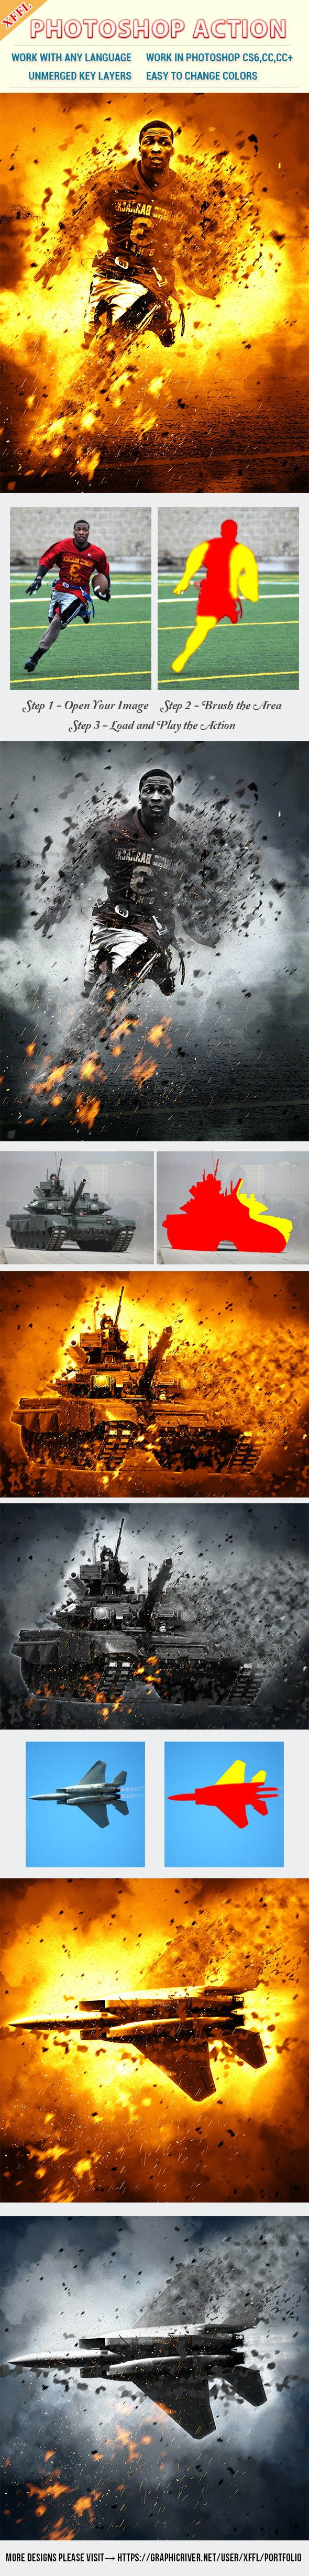 War Blast Scene Photoshop Action - Photo Effects Actions